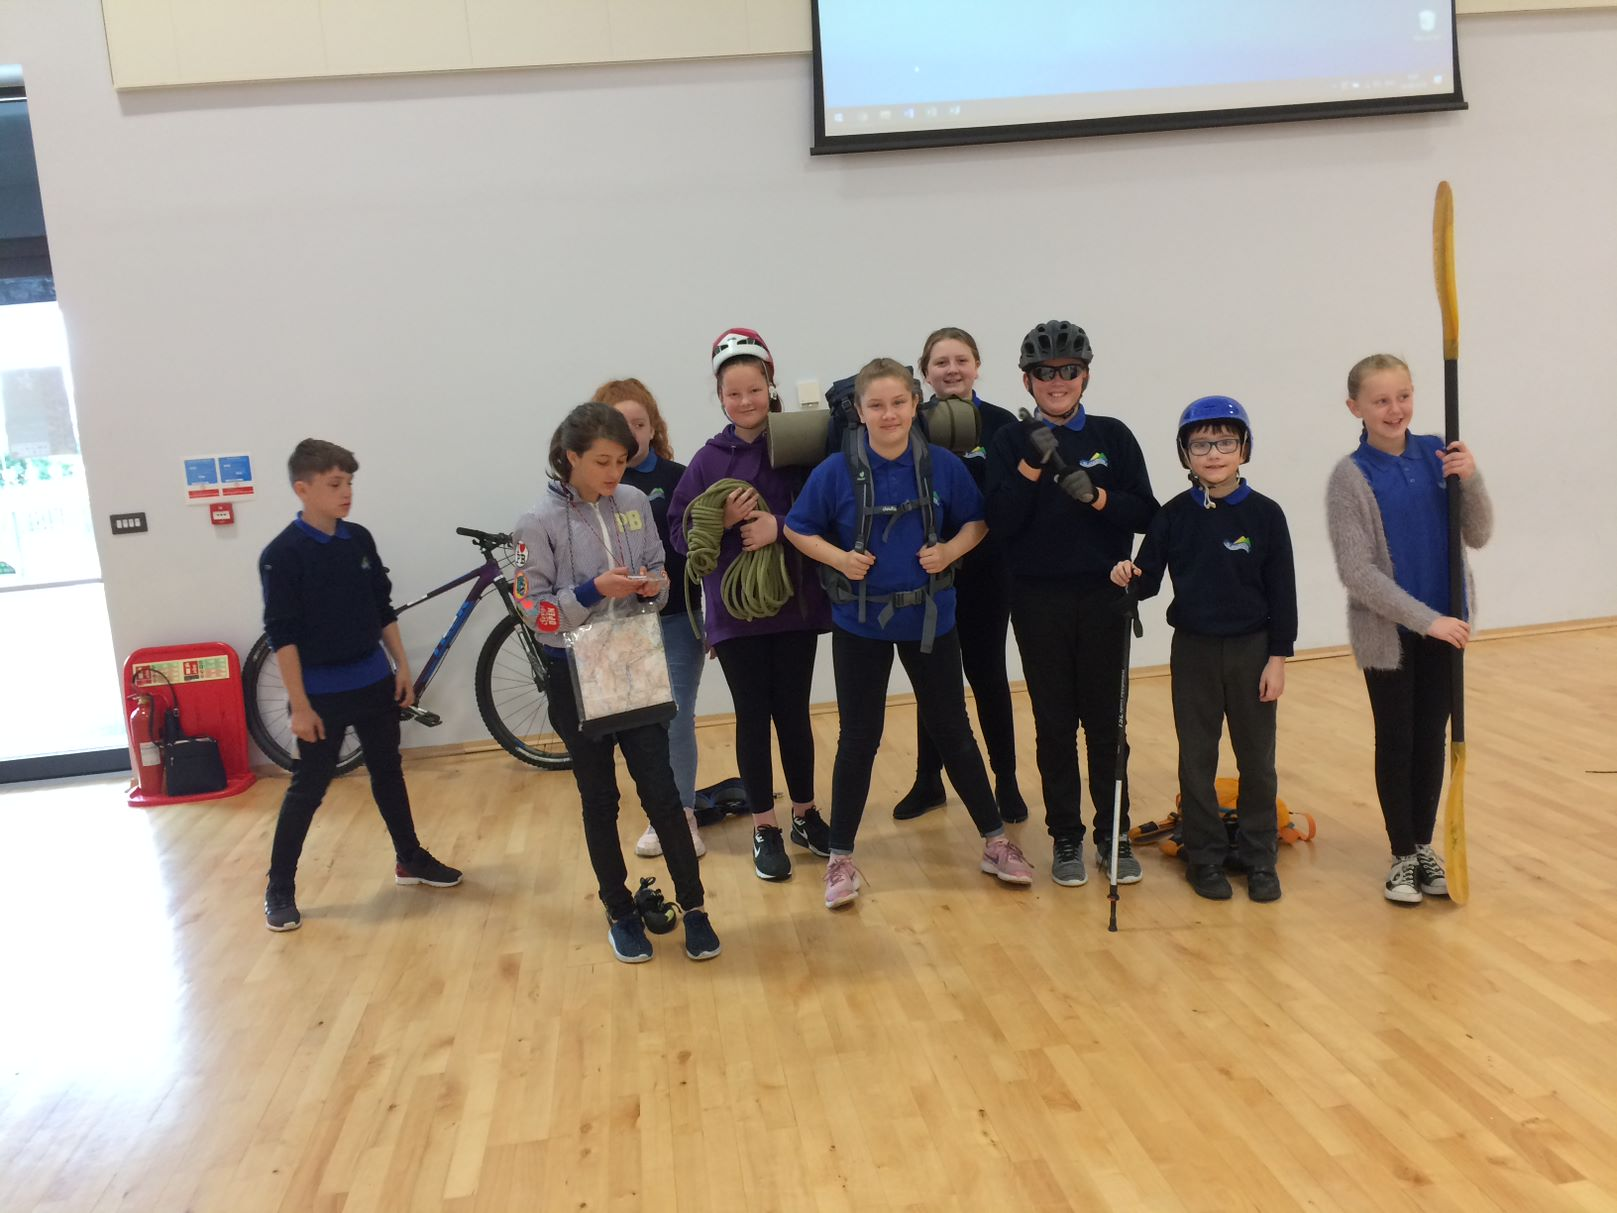 JSMTC show BSIP pupils importance of planning and preparation